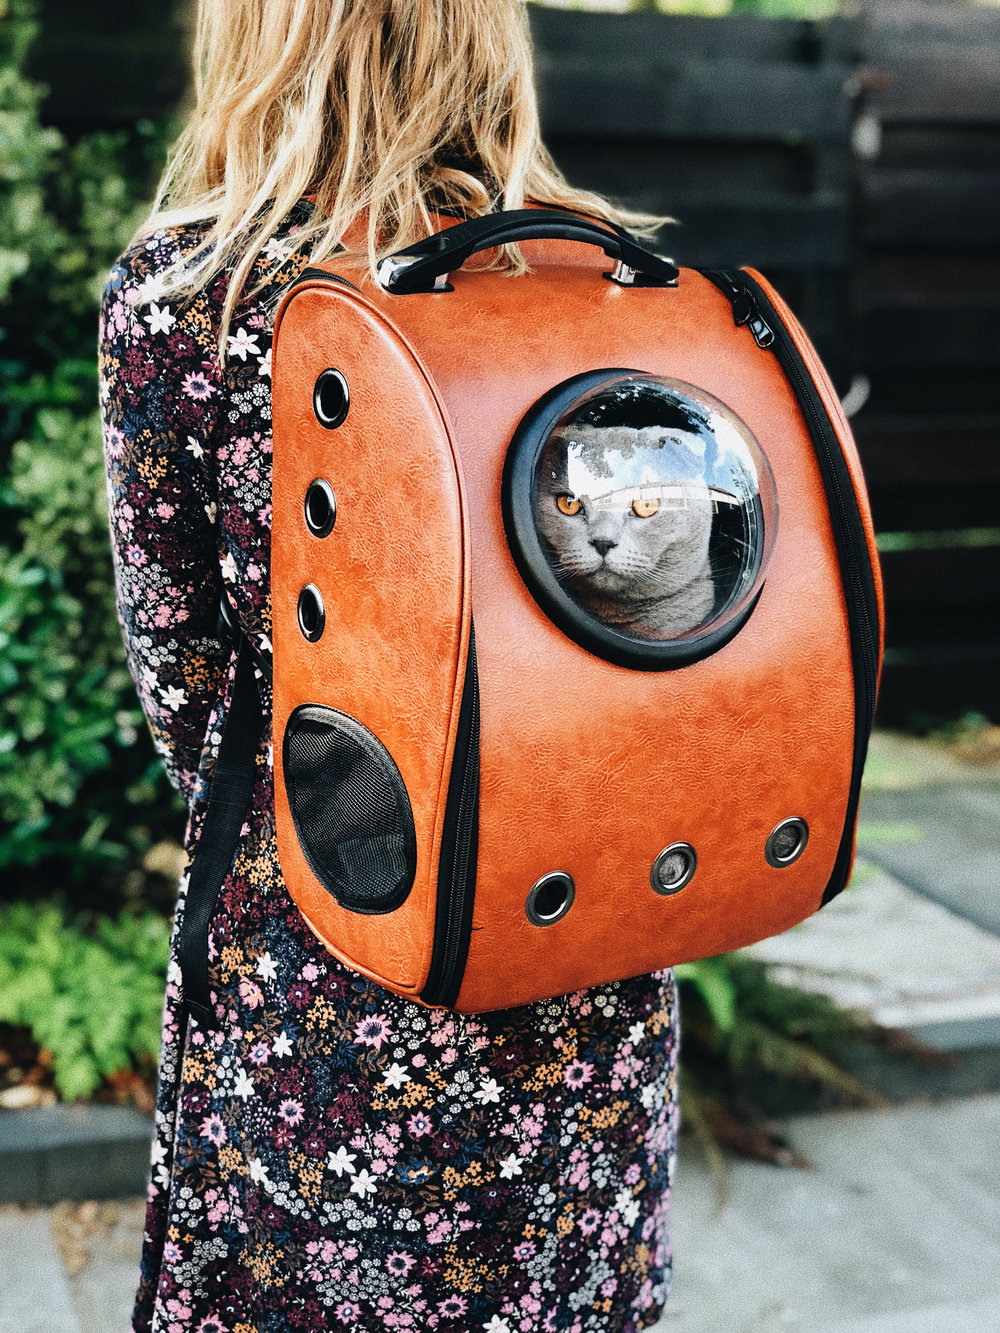 Health Certificates For Travel - We can provide health certificates permitted by our USDA-APHIS accredited veterinarian for domestic travel (excluding Hawaii and Alaska). Our office can also submit titer testing and other necessary lab tests sometimes required. Be aware that rules and regulations pertaining to animal transport intra-state change often and our office cannot be held responsible for incorrect certificates or forms you request from us. Similarly, the timing of tests and expiration dates on paperwork can be critical when traveling with an animal. It is highly recommended that you contact USDA-APHIS and the USDA-APHIS veterinarian at the airport if you plan to fly for the latest requirements. Due to the complexities of these health certificates we are only able to assist with health certificates for domestic travel (excluding Alaska and Hawaii). We also highly recommend that your pet travel in the cabin with you and never as cargo. It is our position that cargo pet travel can present serious dangers for your pet and it is not a mode of pet travel that we endorse.